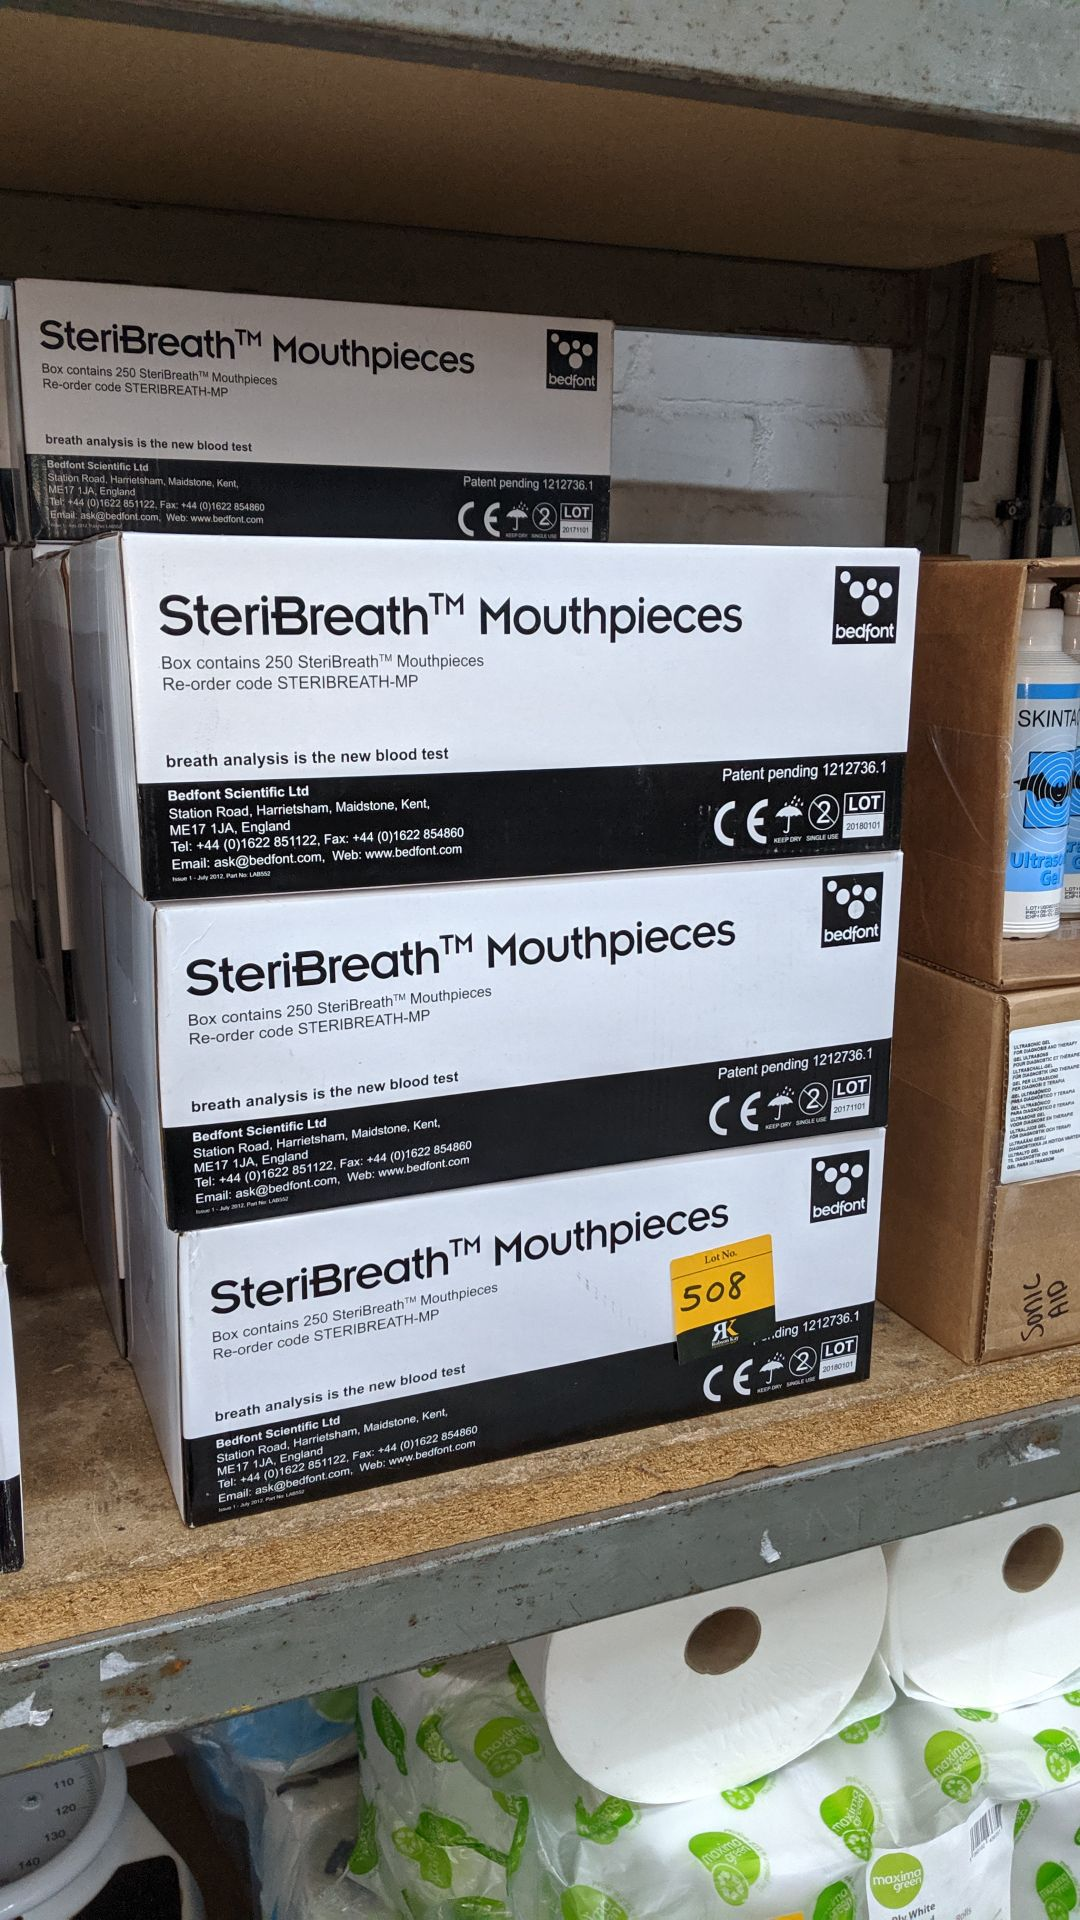 Lot 508 - 14 boxes of Bedfont Steribreath mouth pieces. This is one of a large number of lots used/owned by